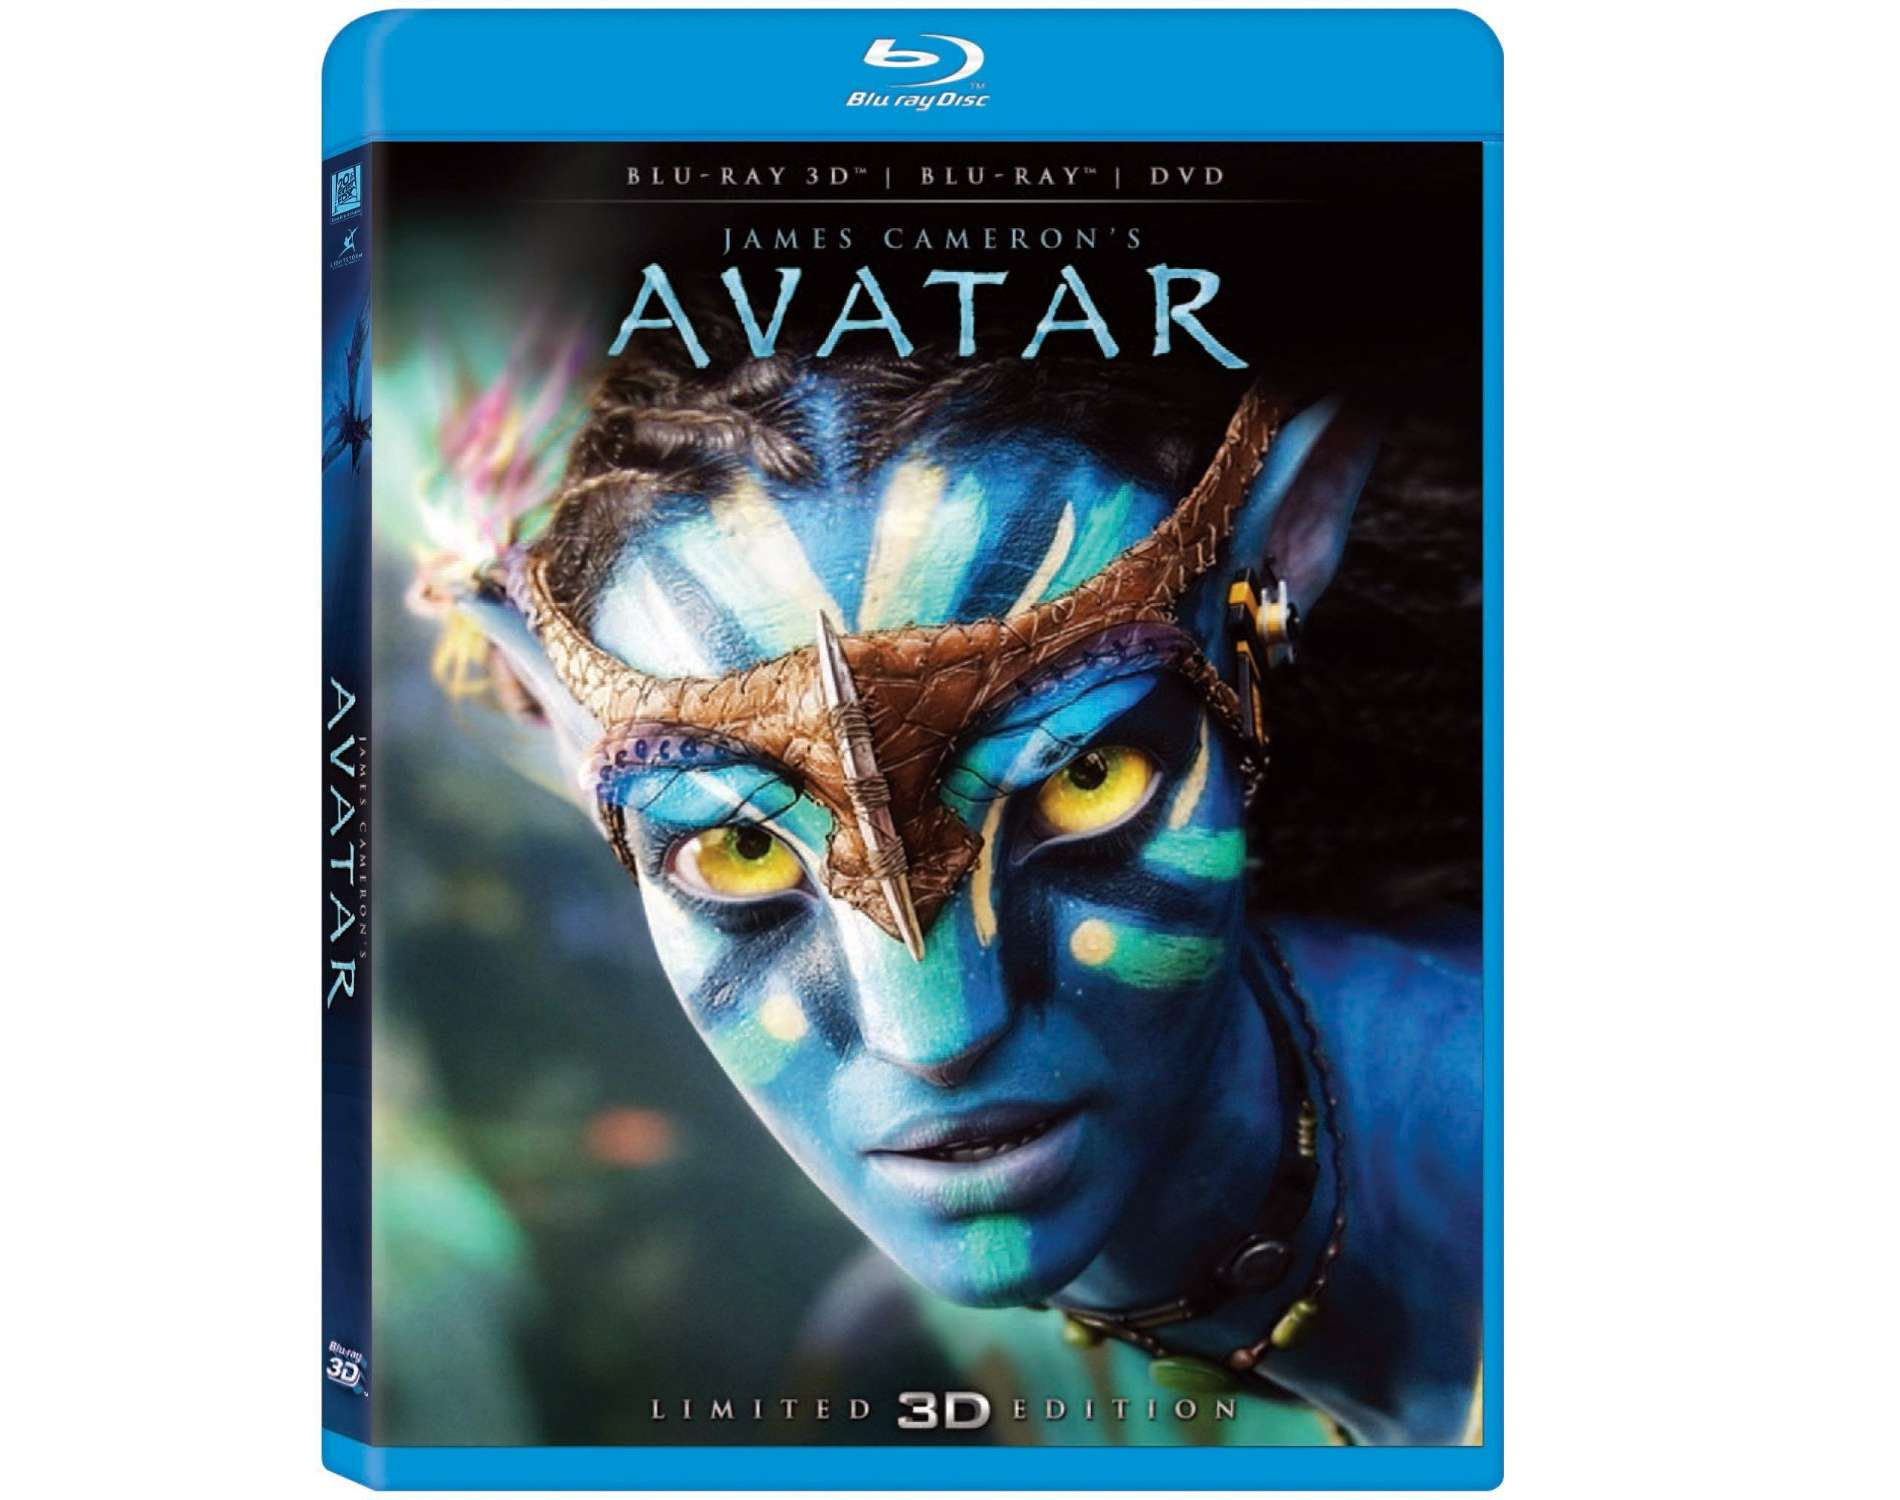 The Best 3D Blu-ray Disc Movies